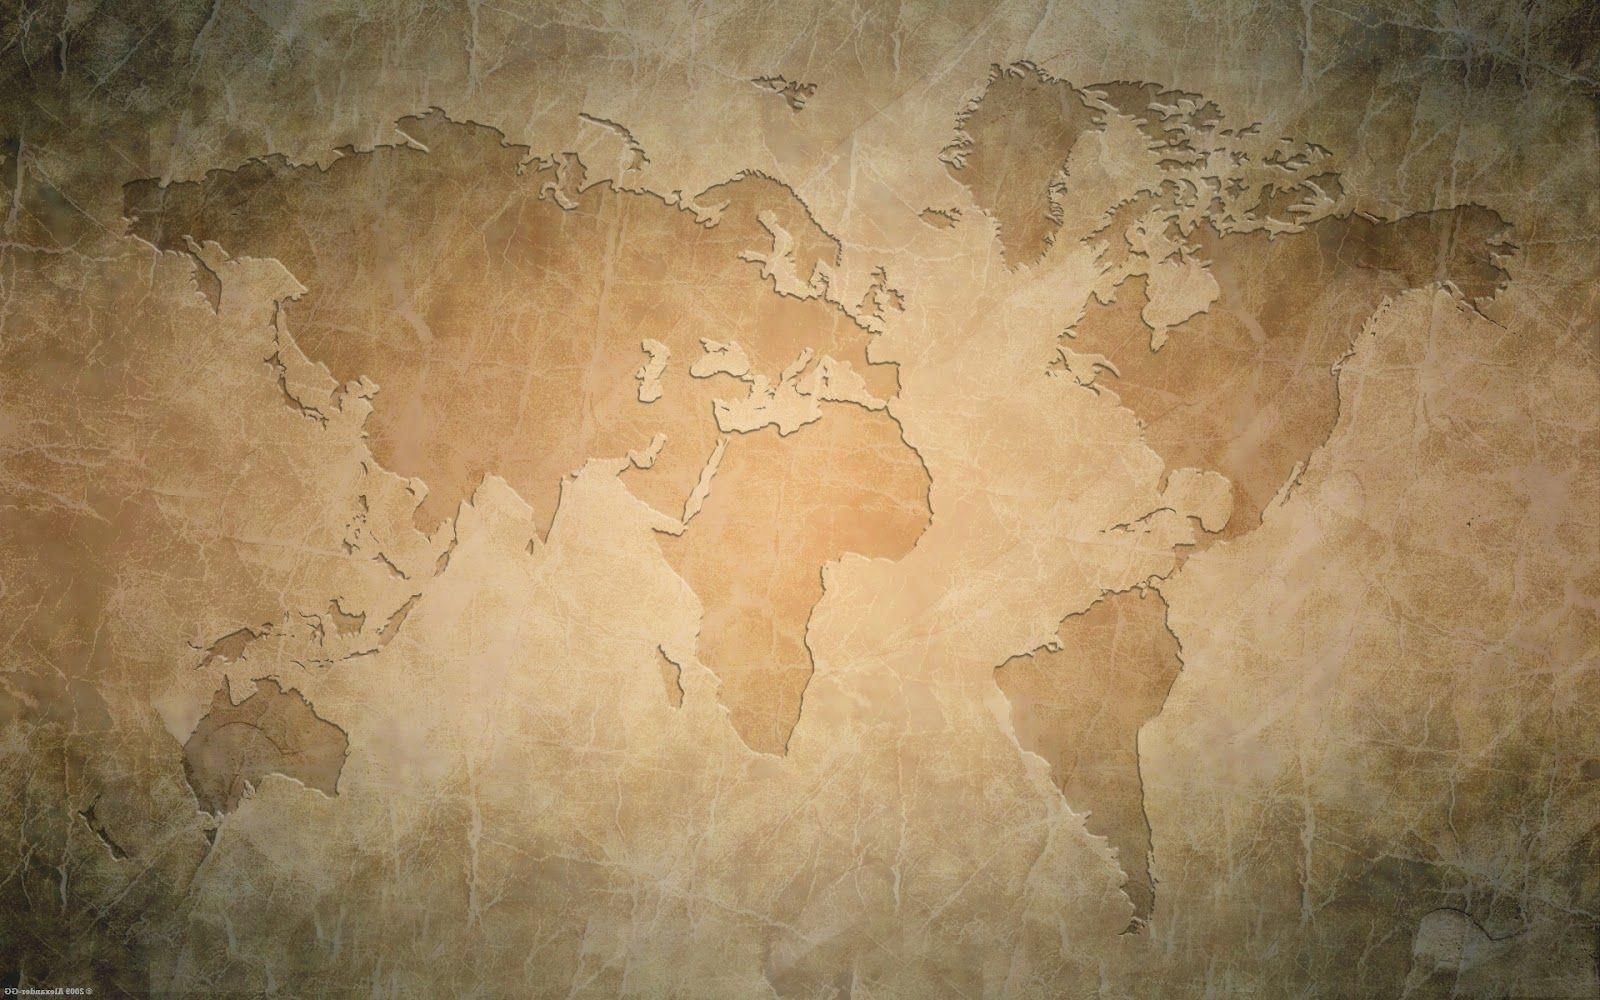 Hd wallpapers textured world map windows desktop wallpaper hd wallpapers textured world map windows desktop wallpaper gumiabroncs Image collections